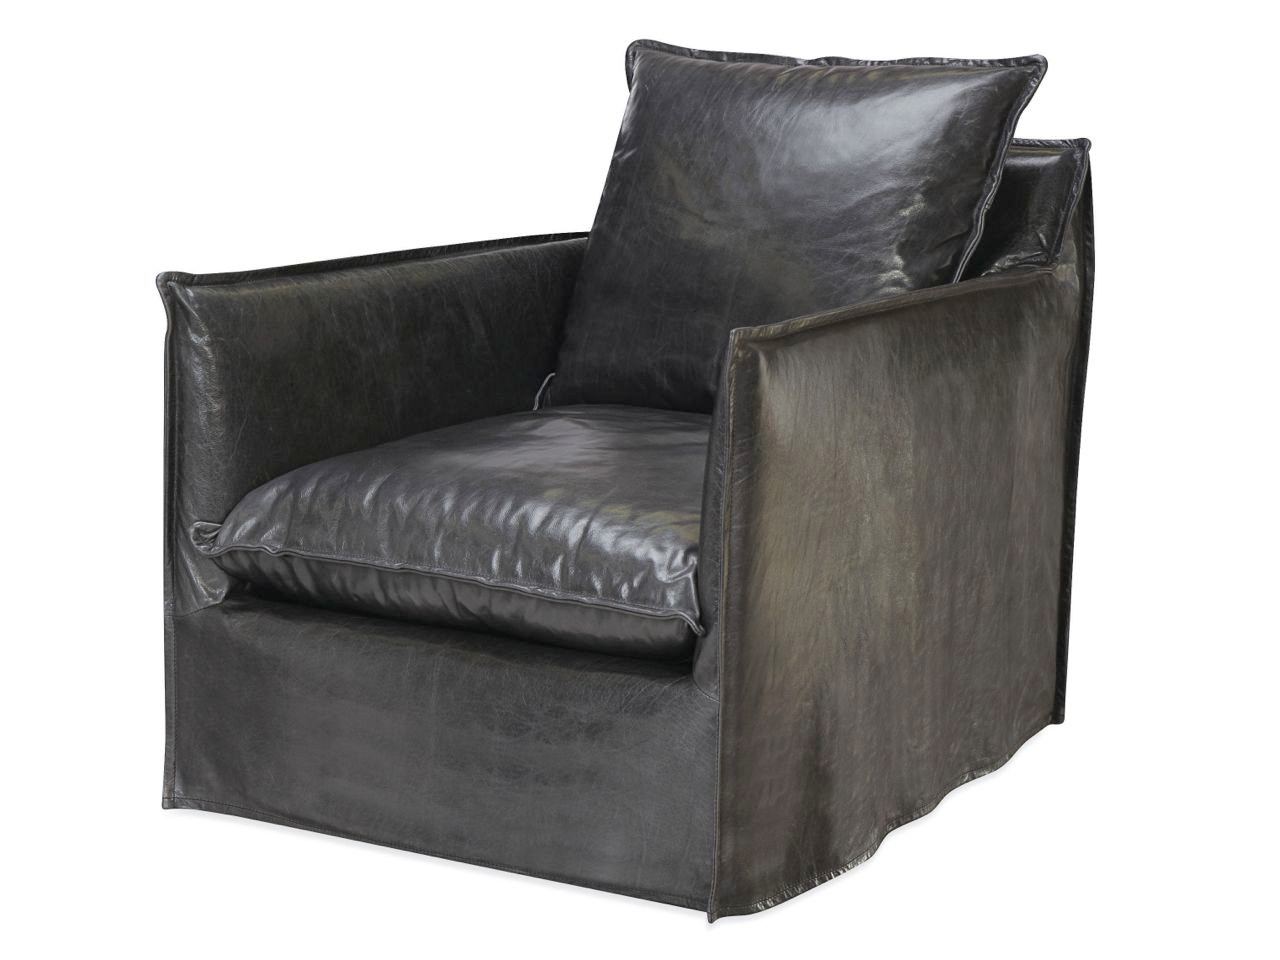 ... Riley Slipcovered Leather Swivel Chair. Image 1